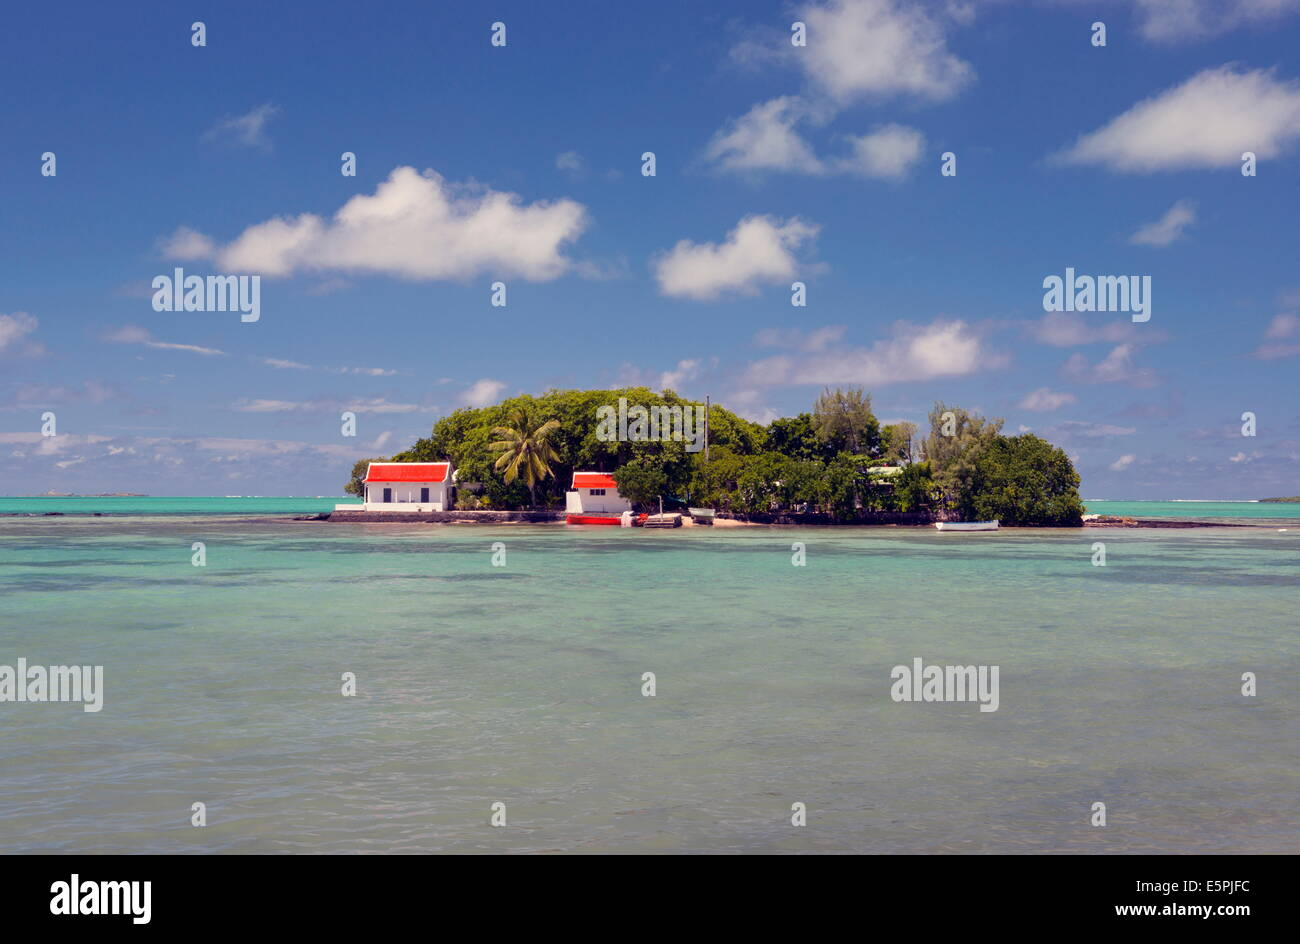 Mouchoir Island off the southeast coast of Mauritius, Indian Ocean, Africa - Stock Image